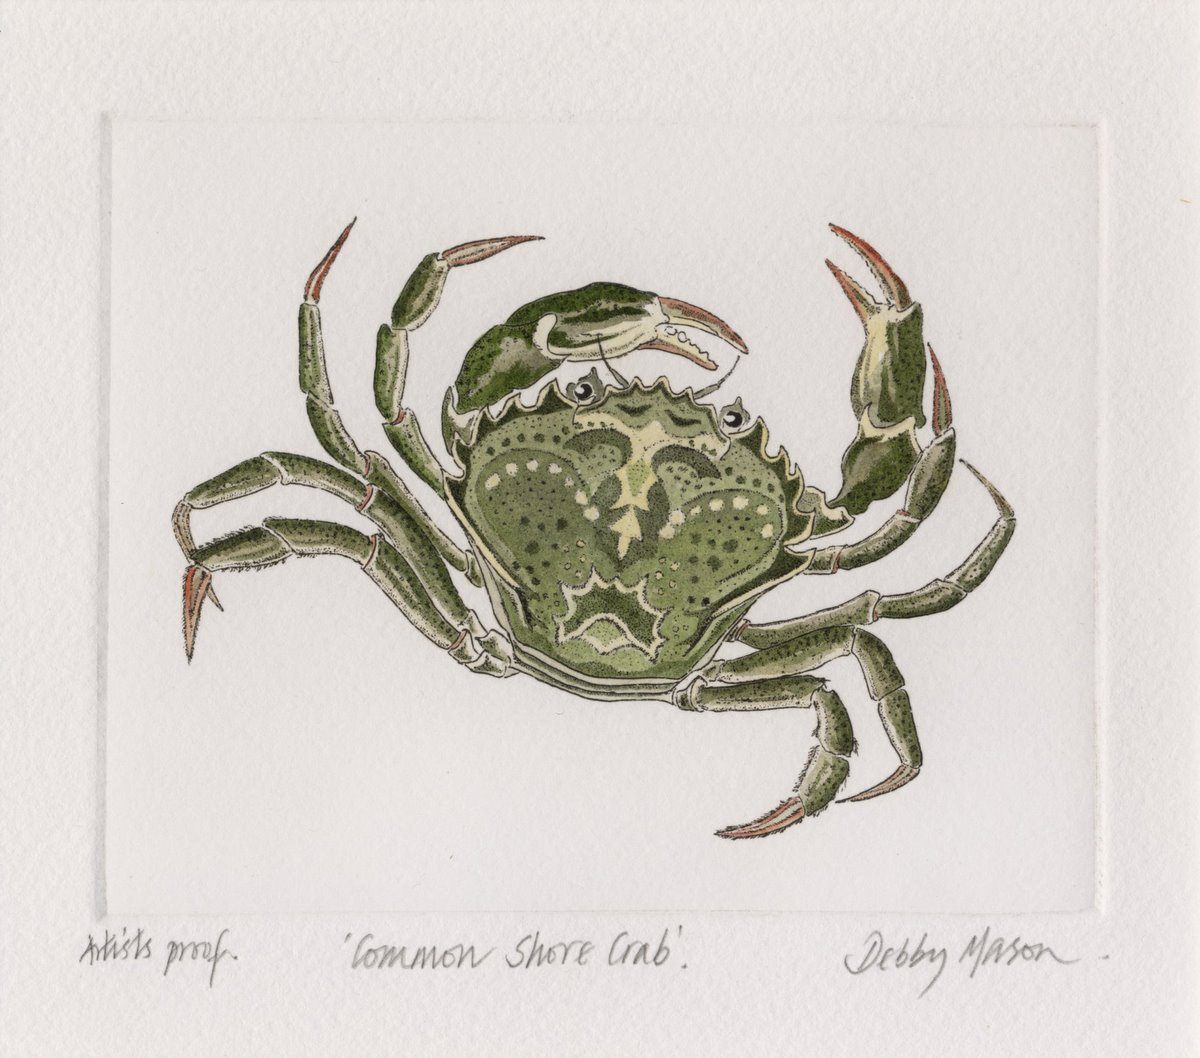 common shore crab crustaceans small prints hand coloured etching